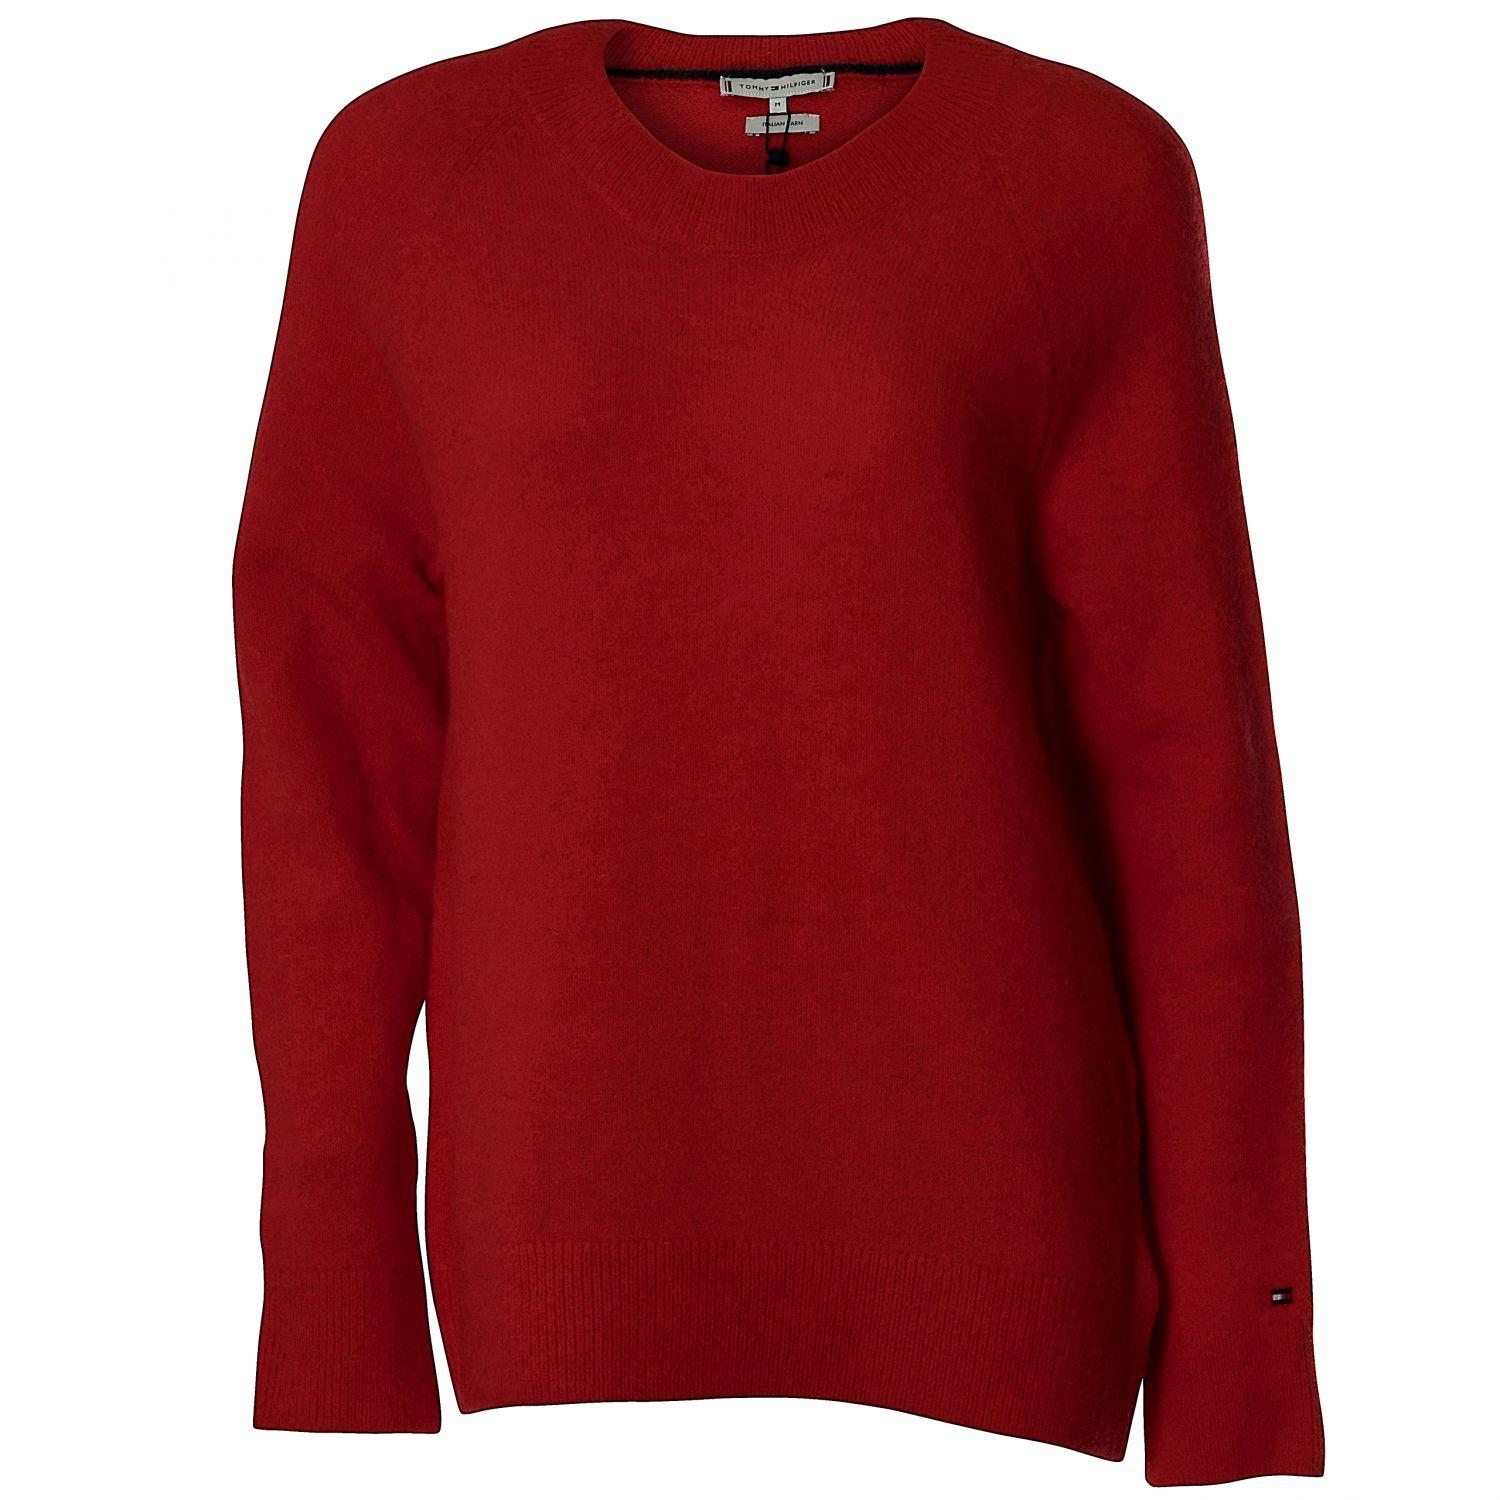 c1b60b4cecf1ce Tommy Hilfiger Vallis Round-NK SWTR Pullover Damen, rot ...